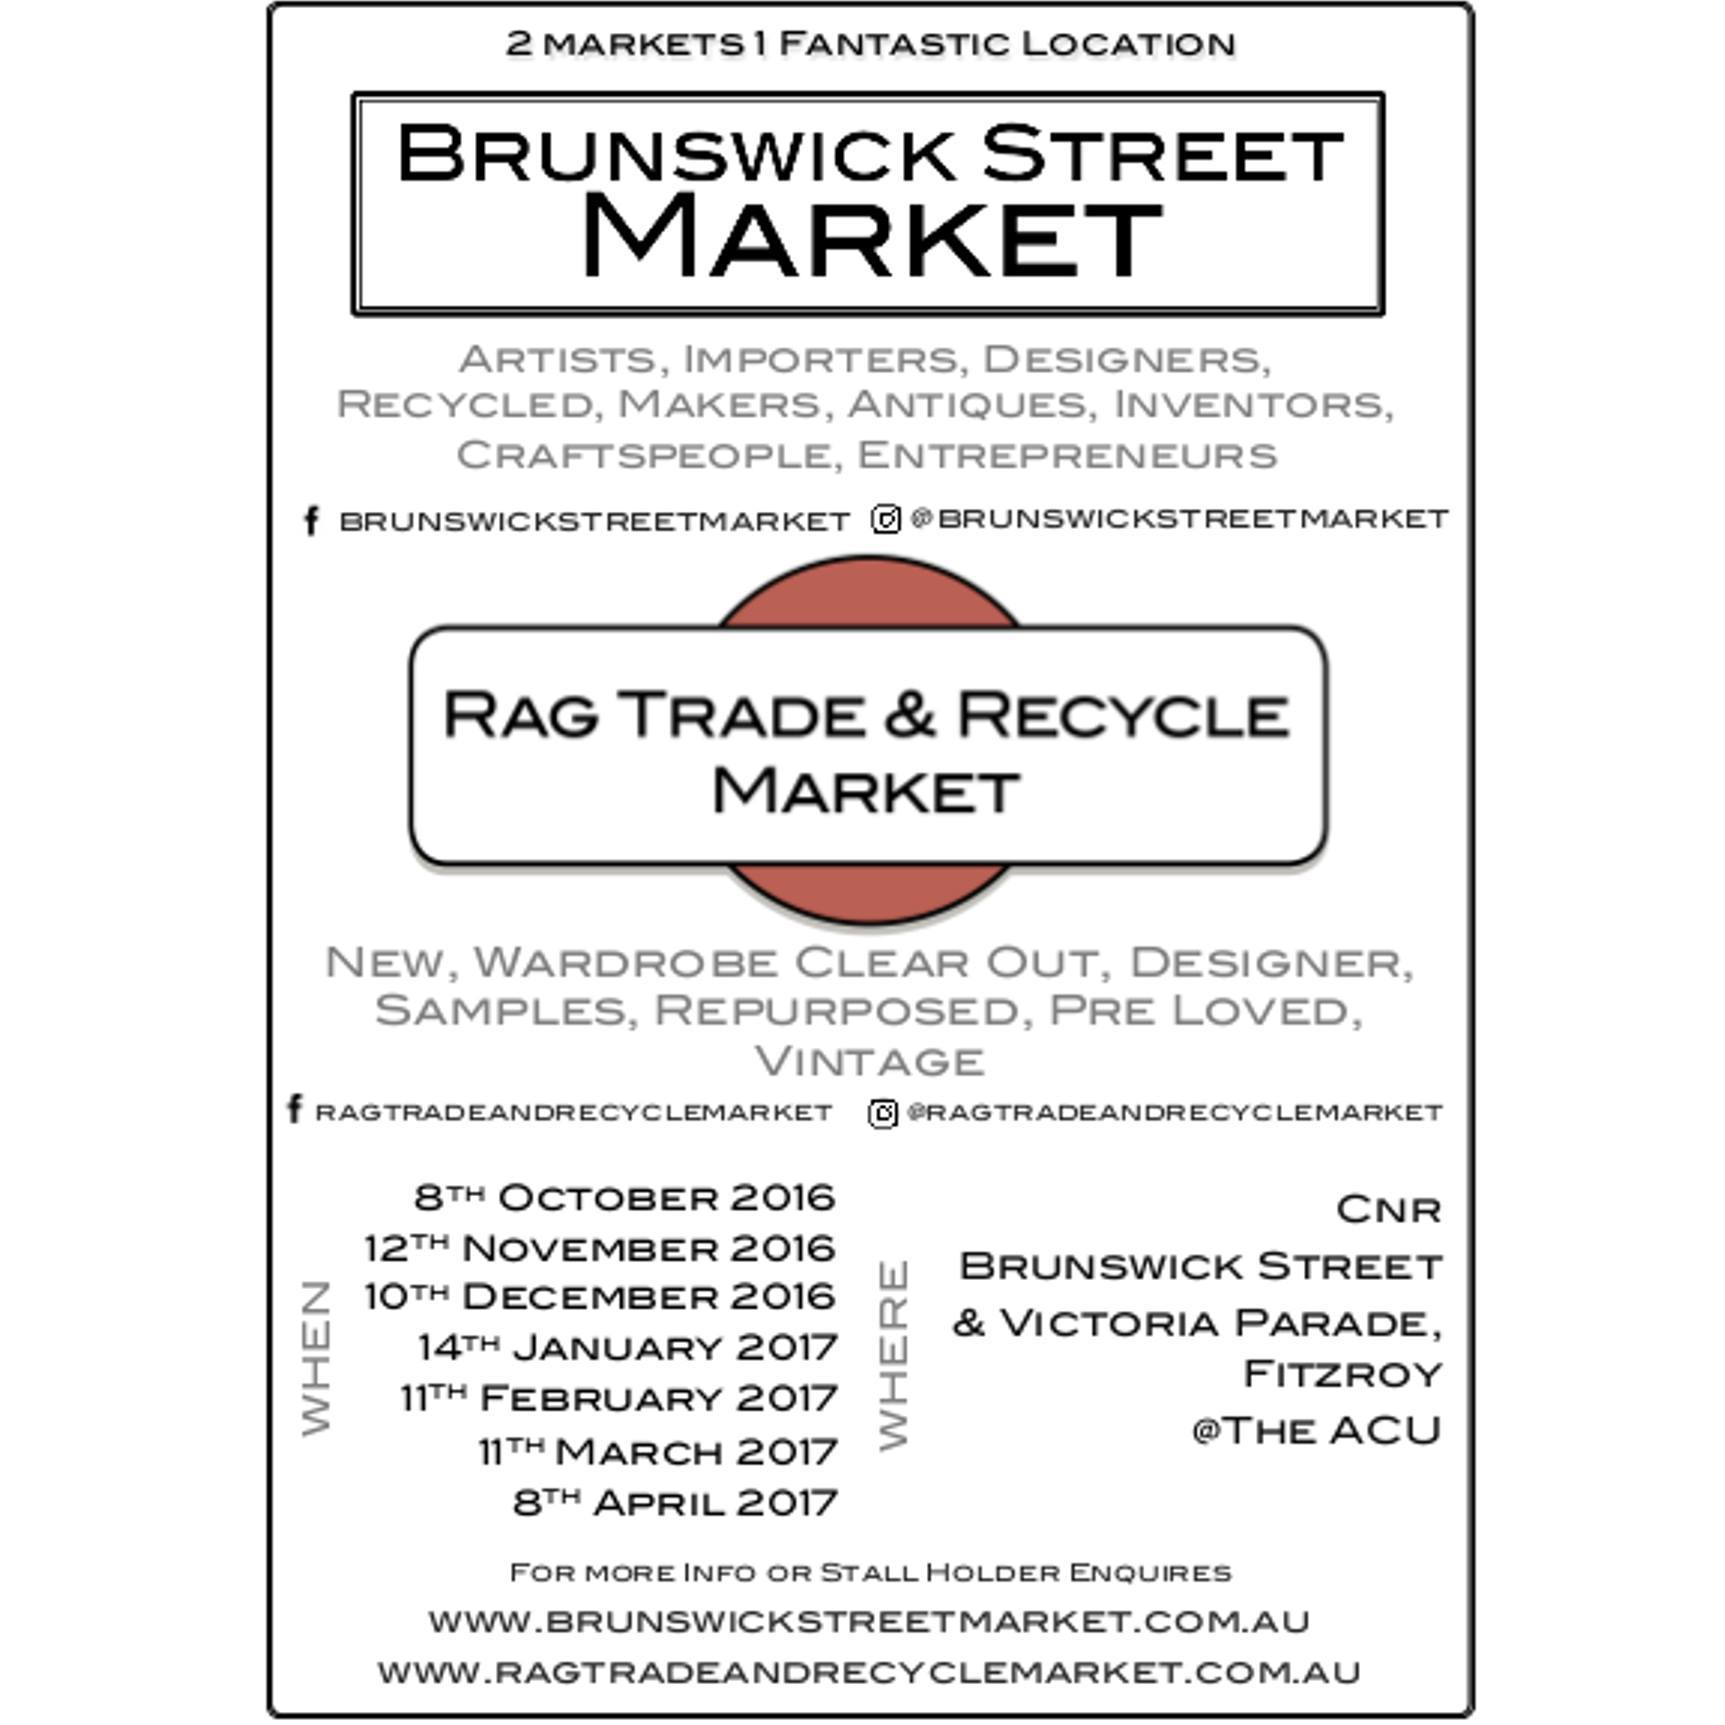 Brunswick Street Market, Rag Trade & Recycle Market